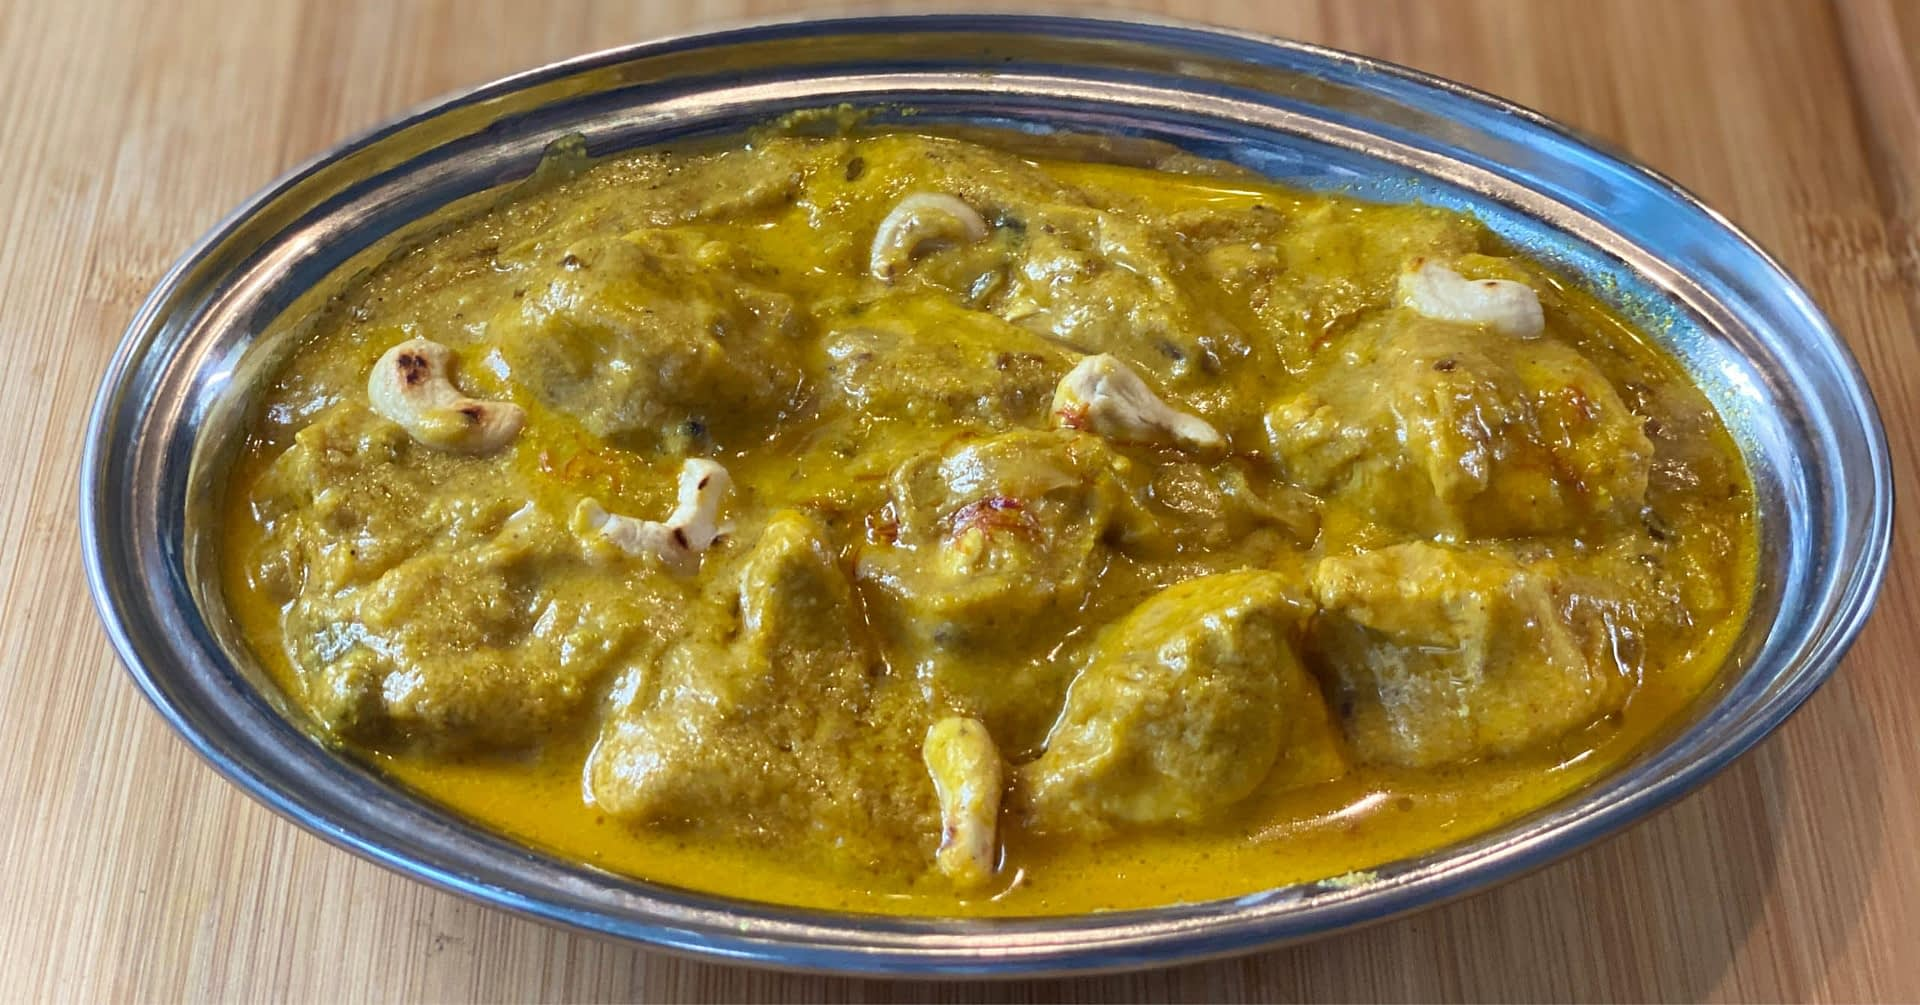 BIR Chicken Rezala Authentic Bengali Tweaks